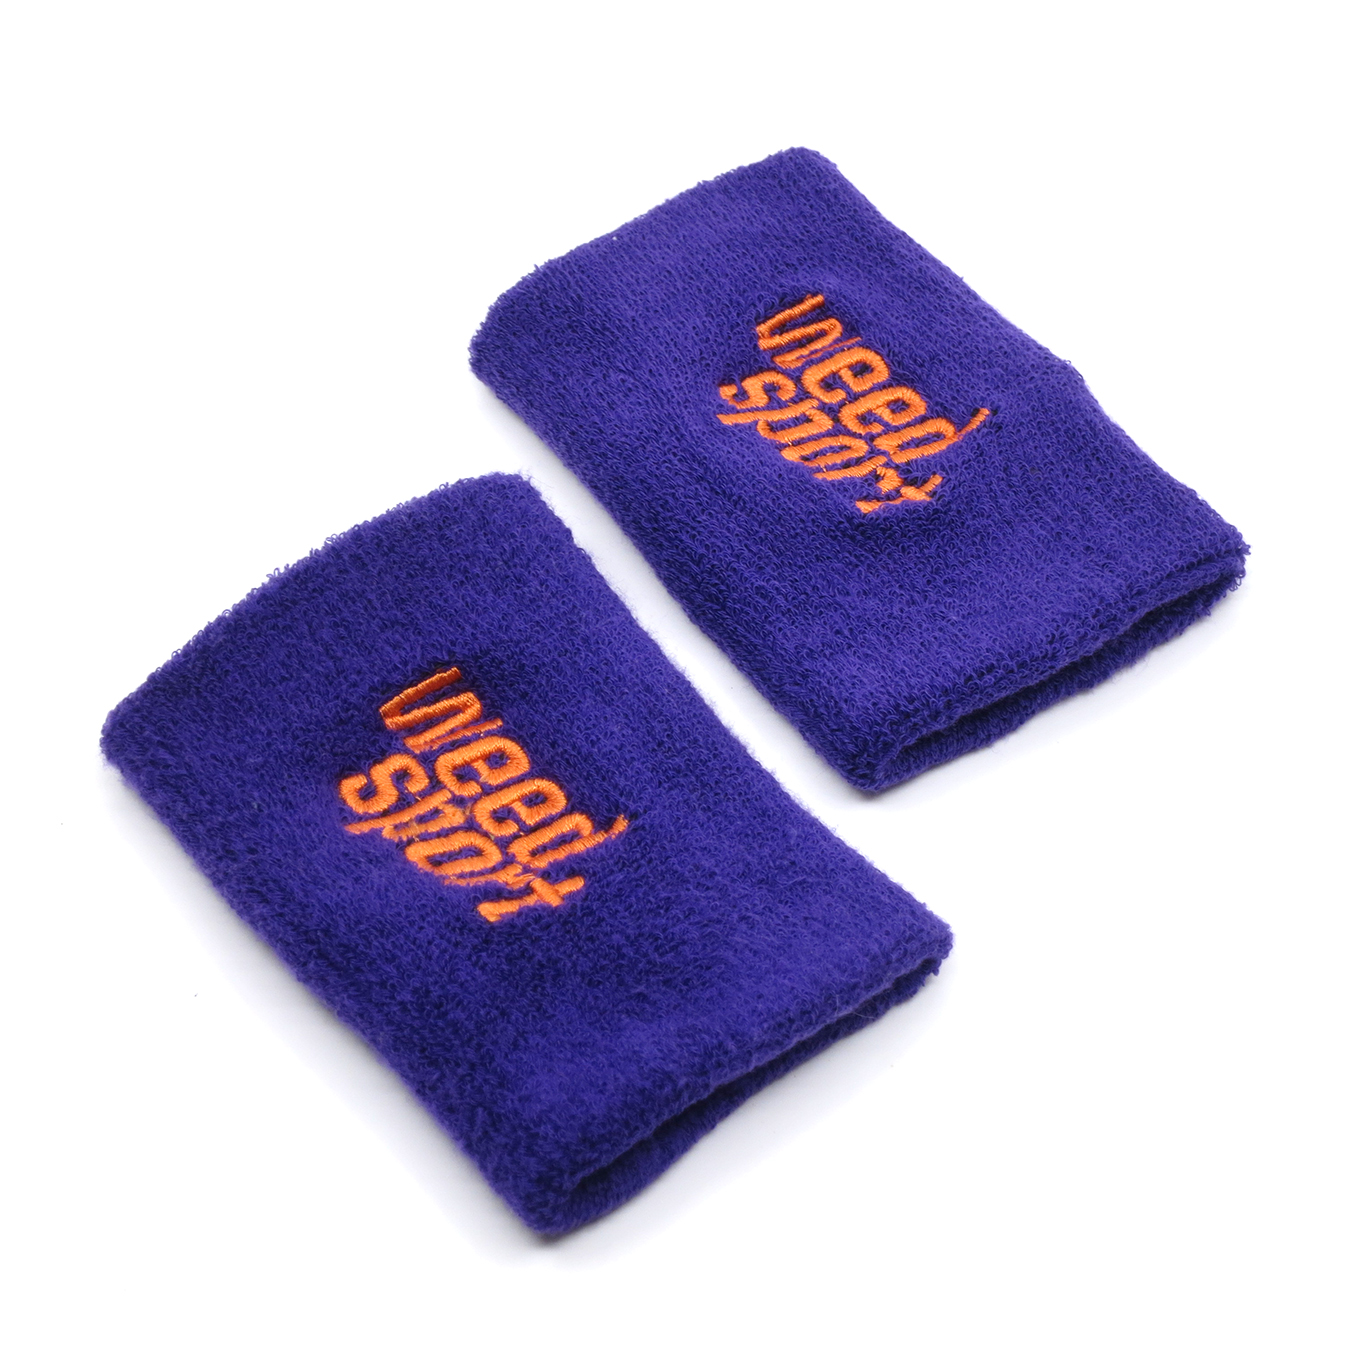 Big Wristbands (Purple/Orange)